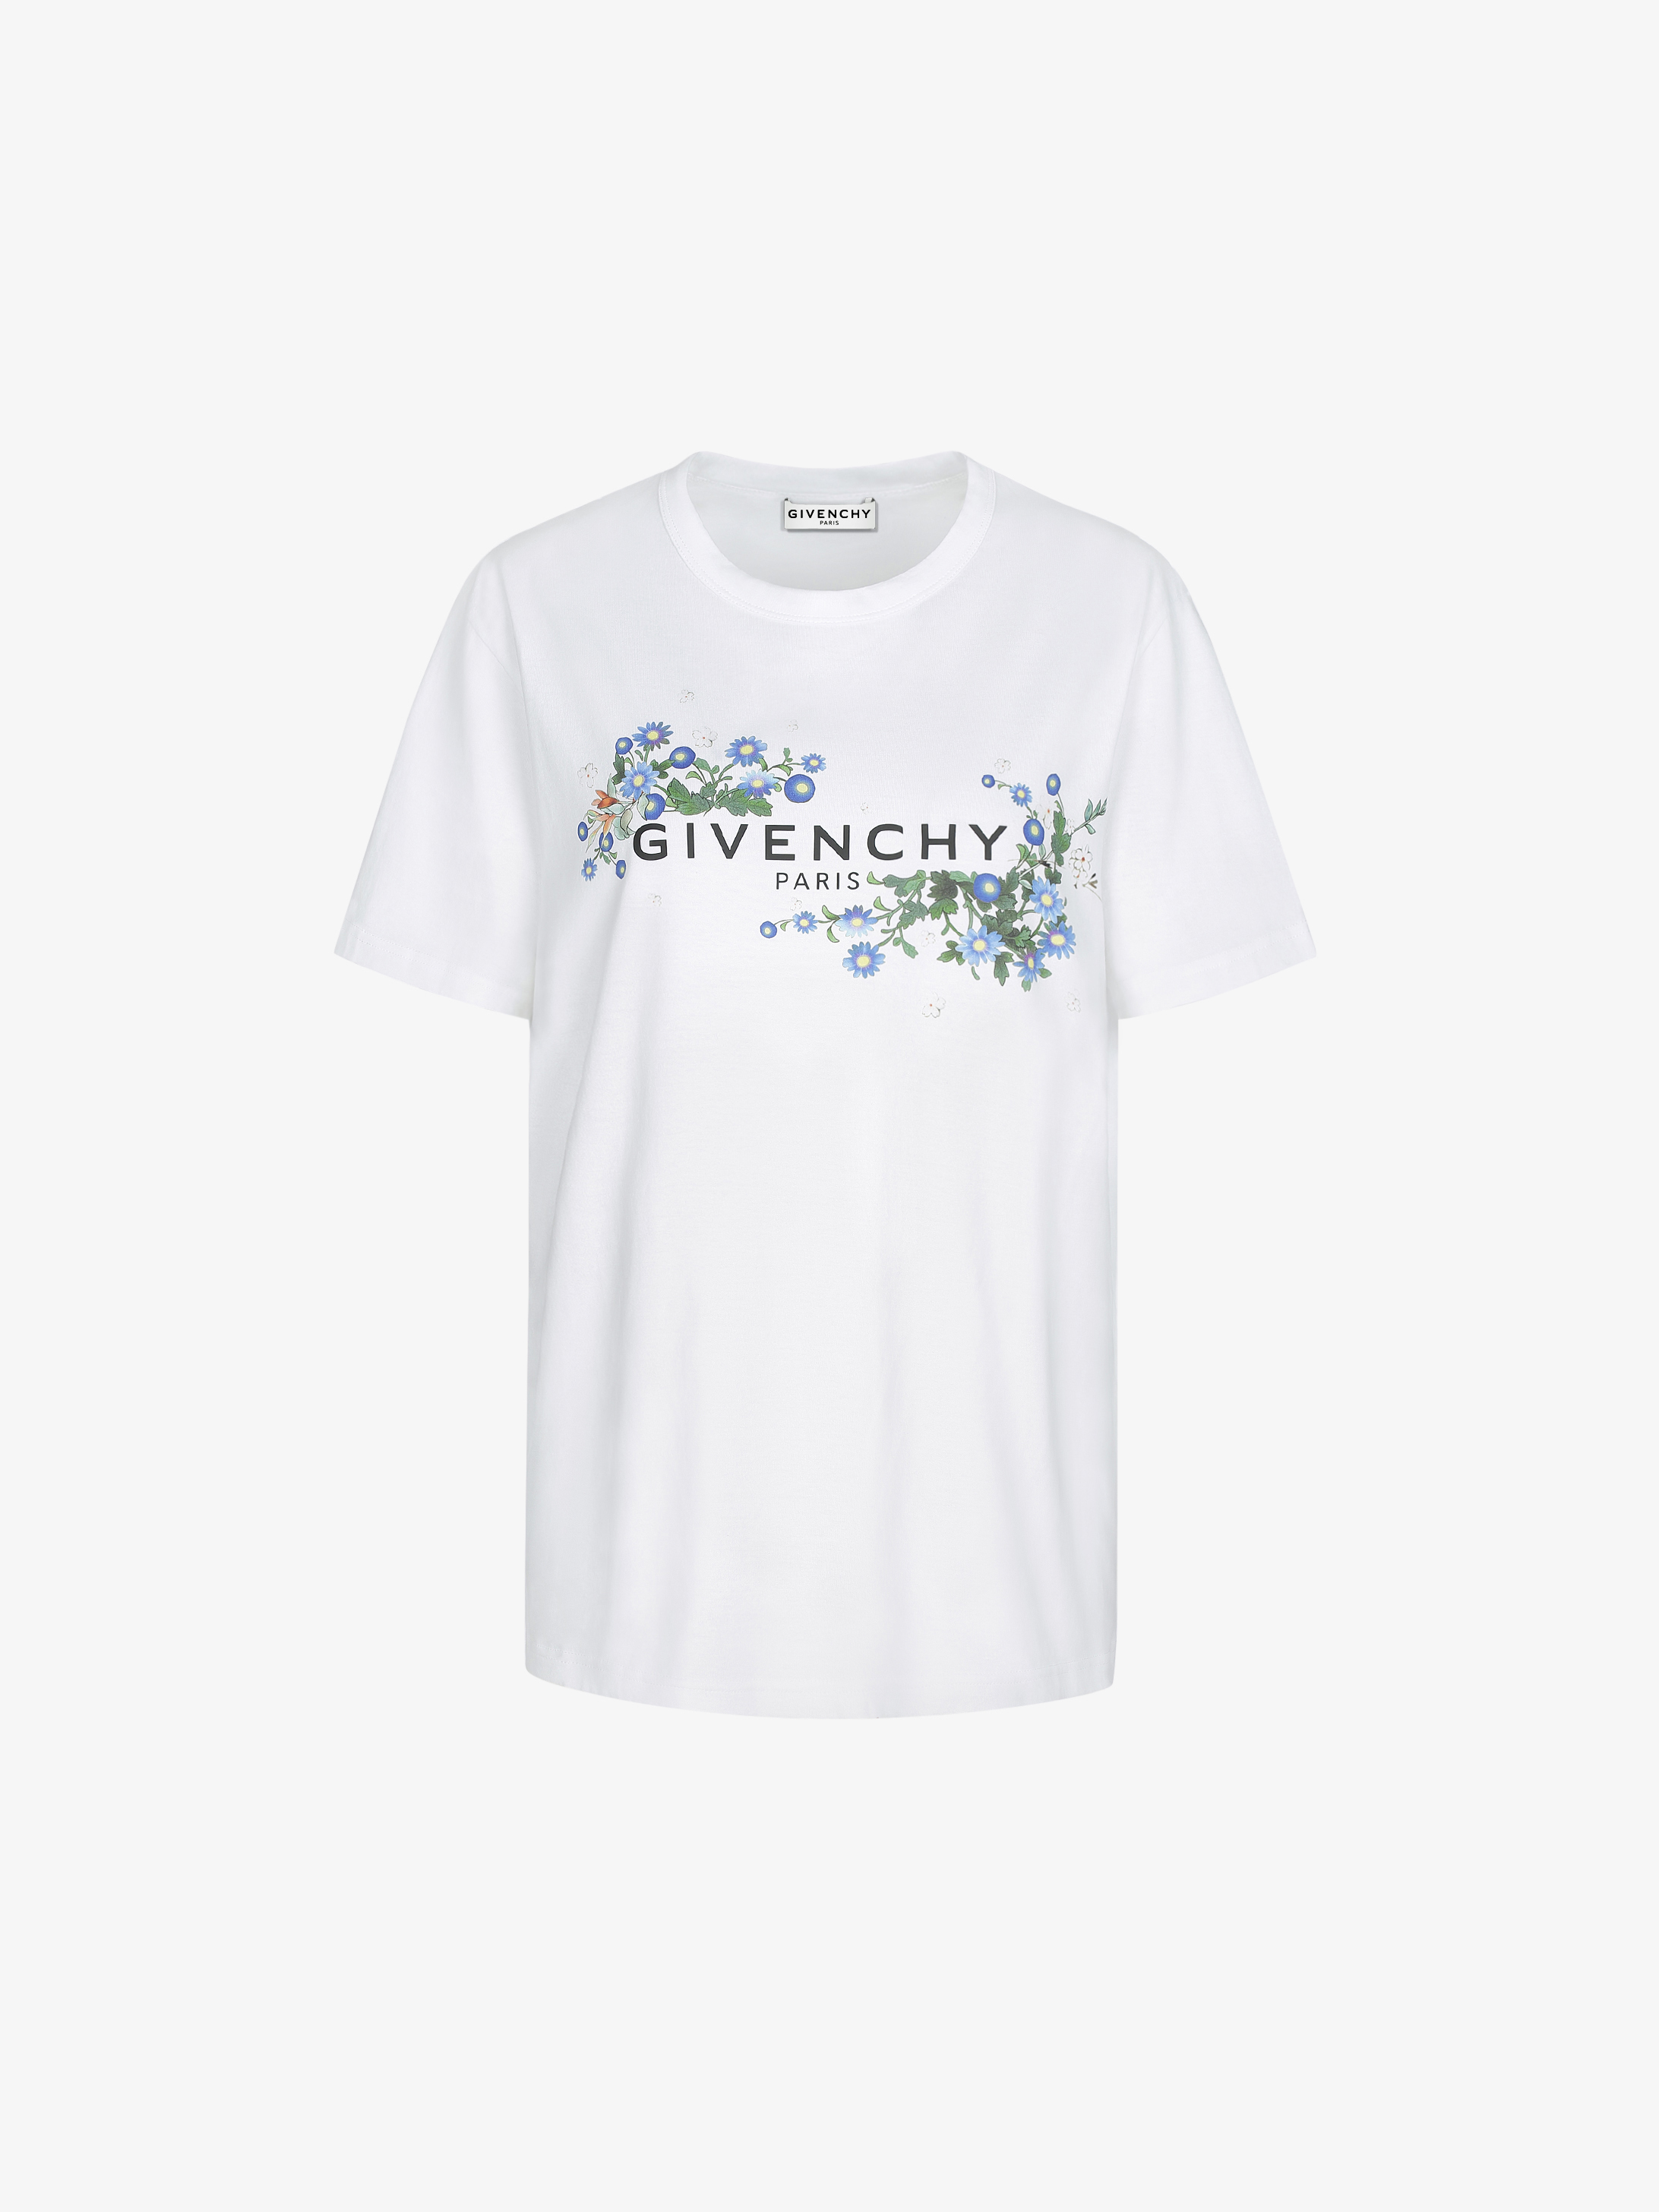 GIVENCHY PARIS floral printed oversized t-shirt